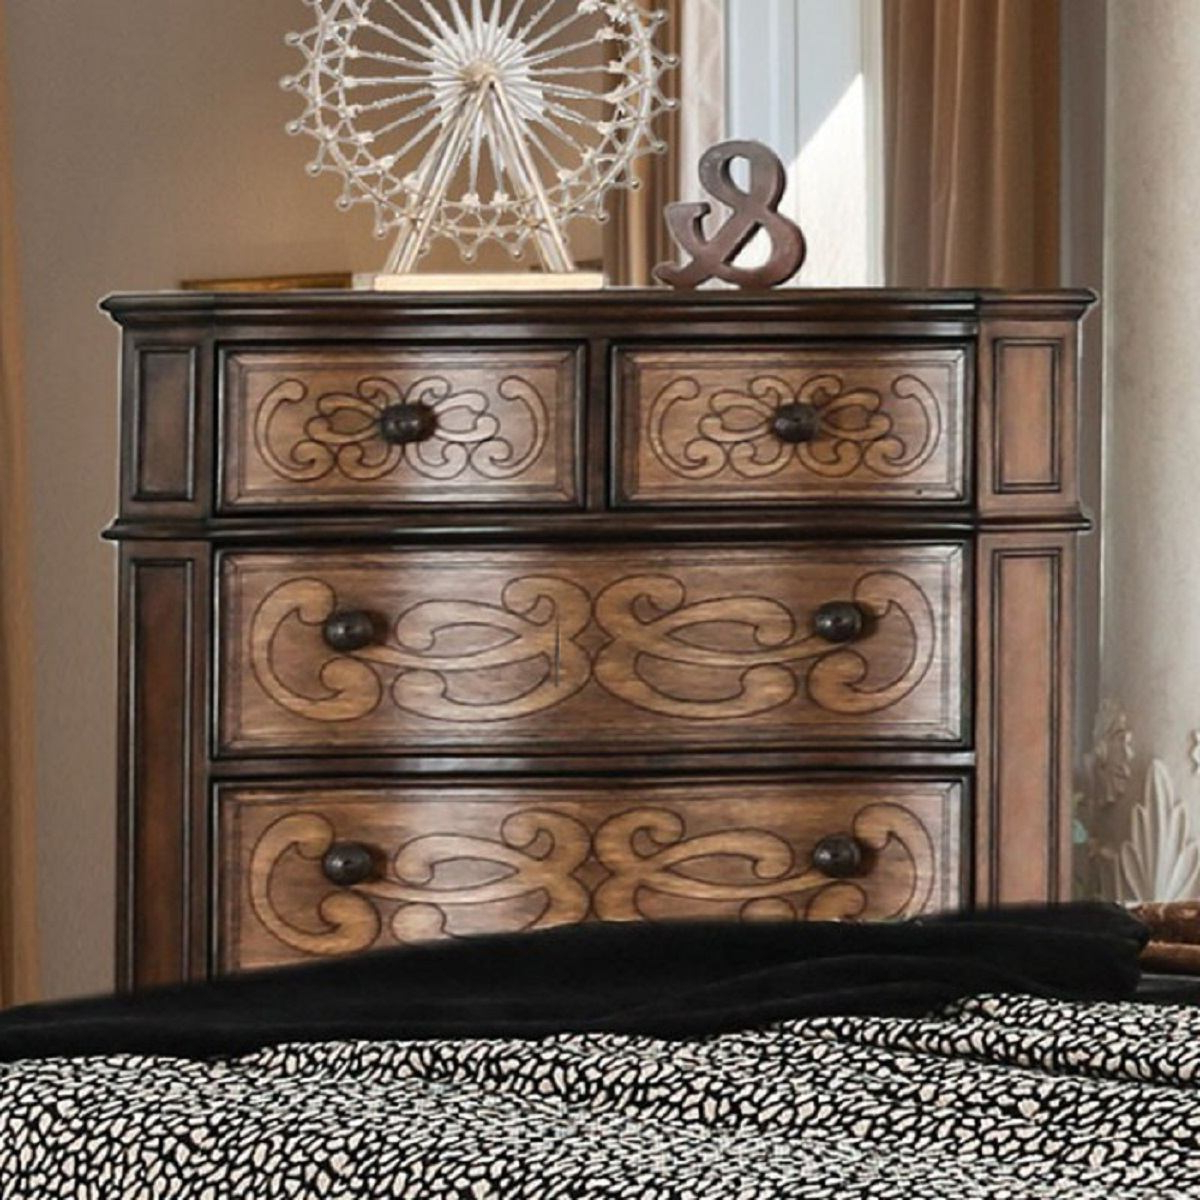 Popular Furniture Of America Emmaline 6 Drawer Chest In Warm Chestnut Cm7831c For Emmaline Sideboards (View 17 of 20)